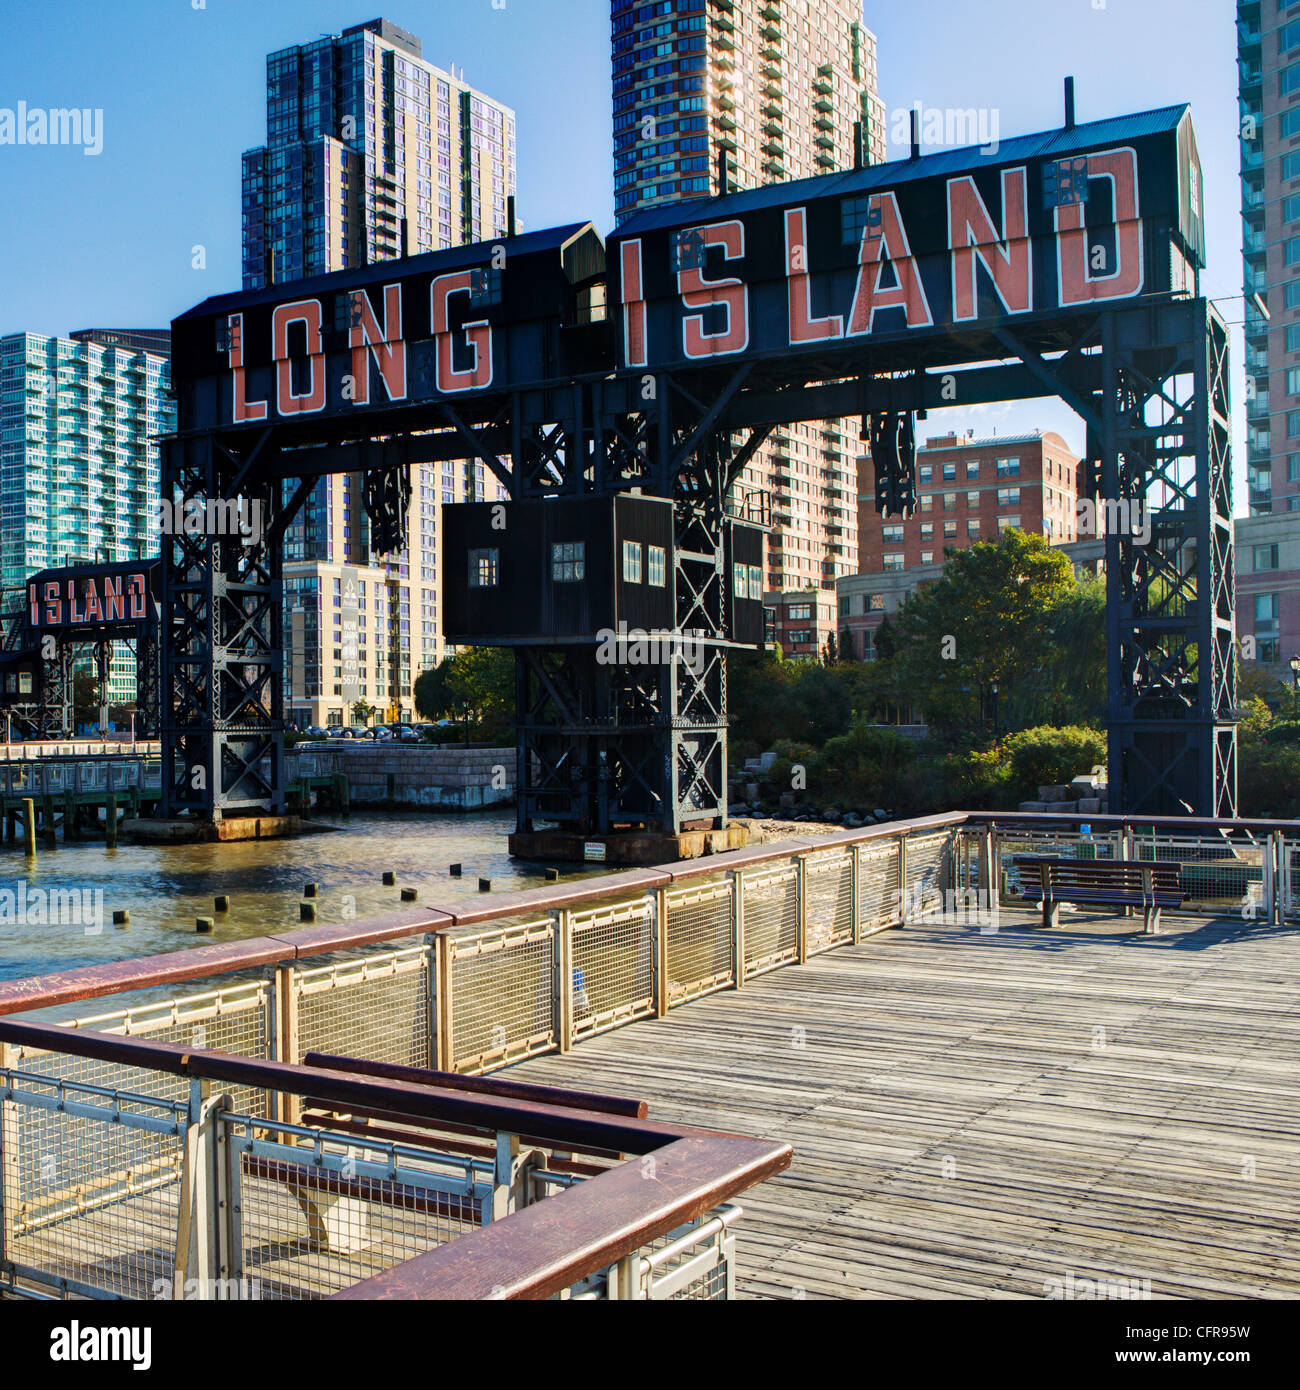 Long Island, Queens, New York City, New York, United States of America, North America Stock Photo